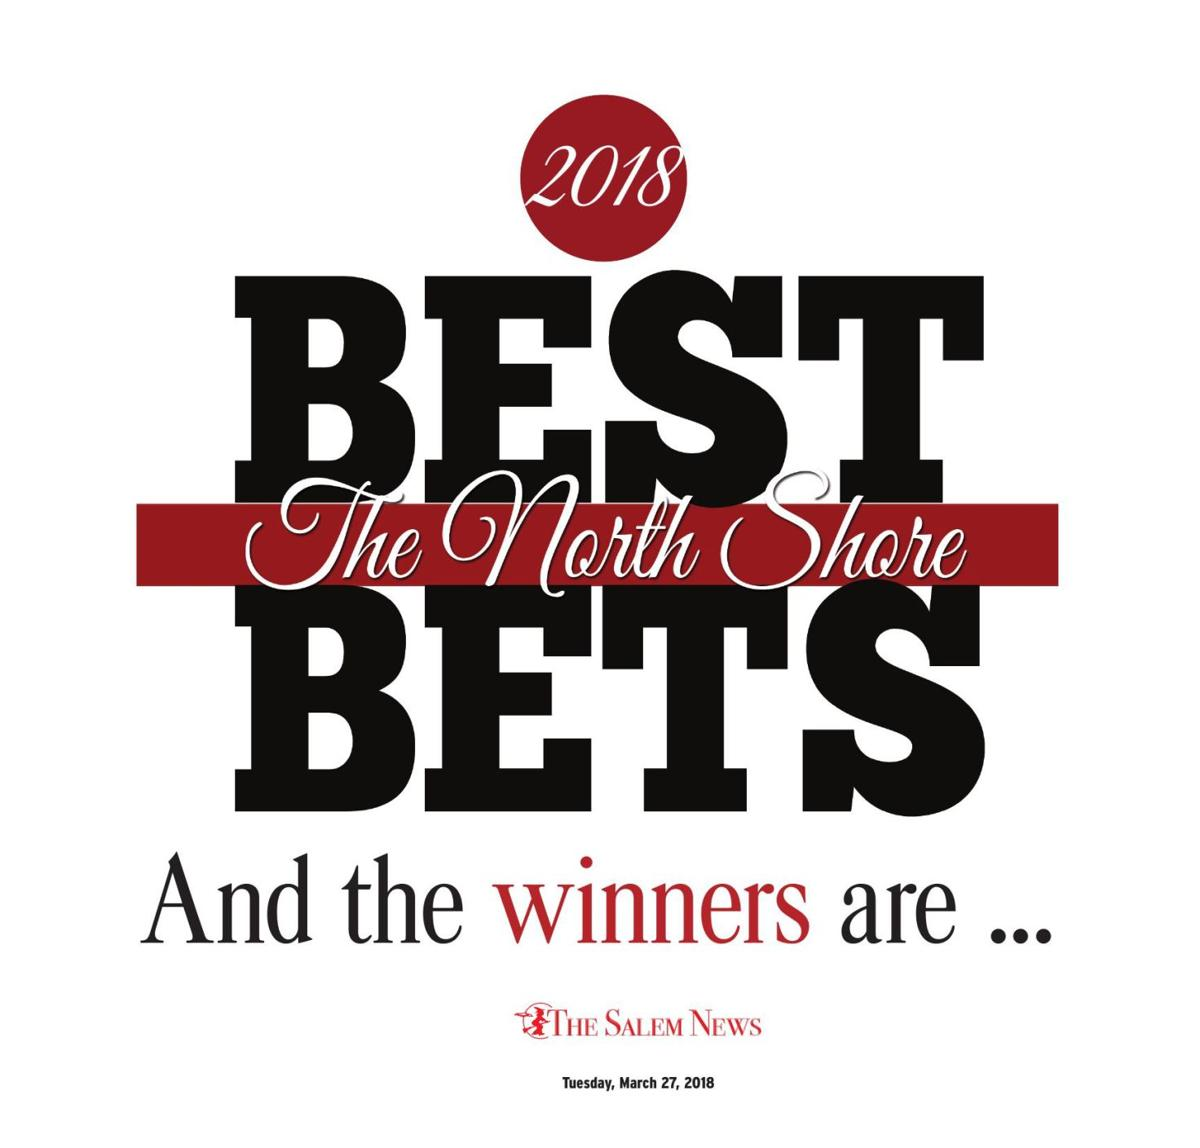 Best Bets results 2018